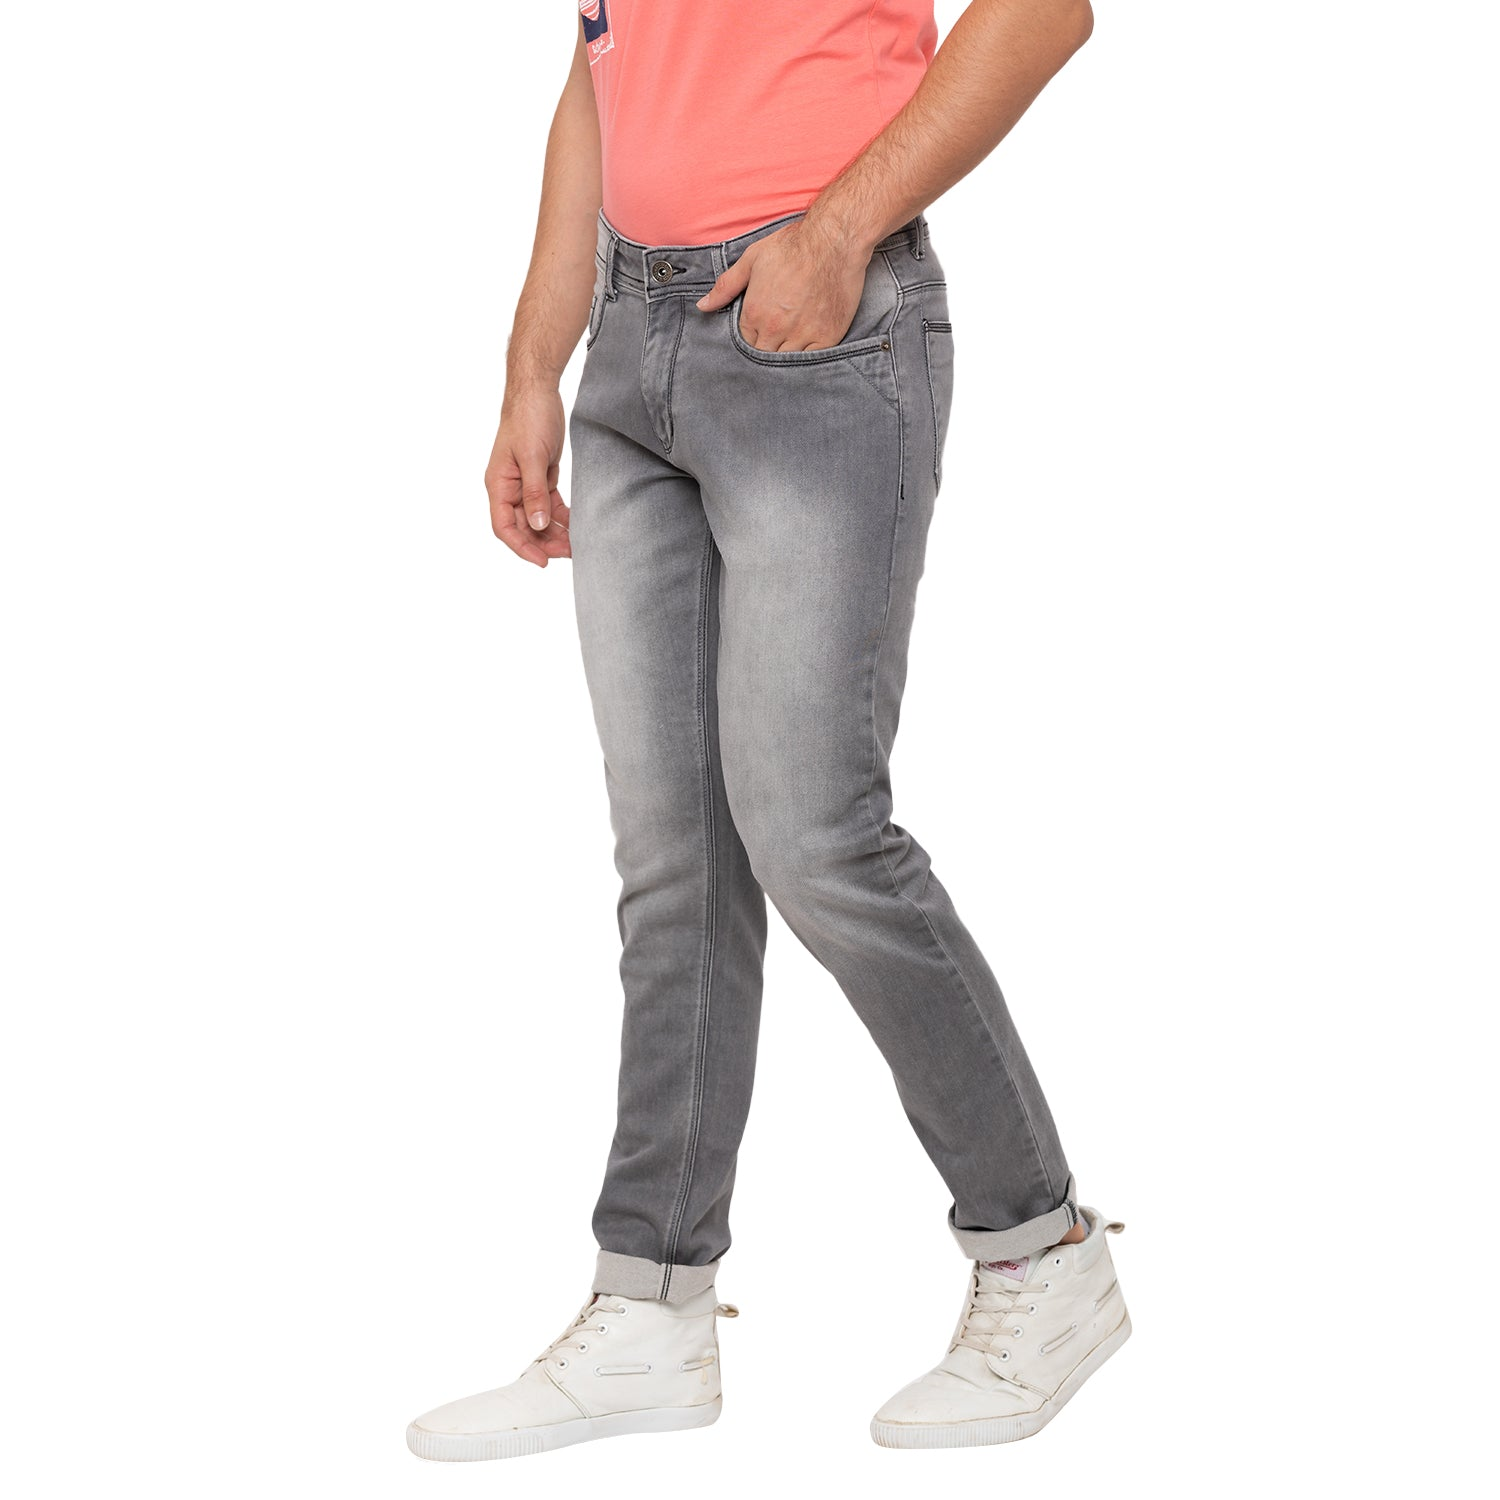 Globus Grey Washed Clean Look Jeans-2